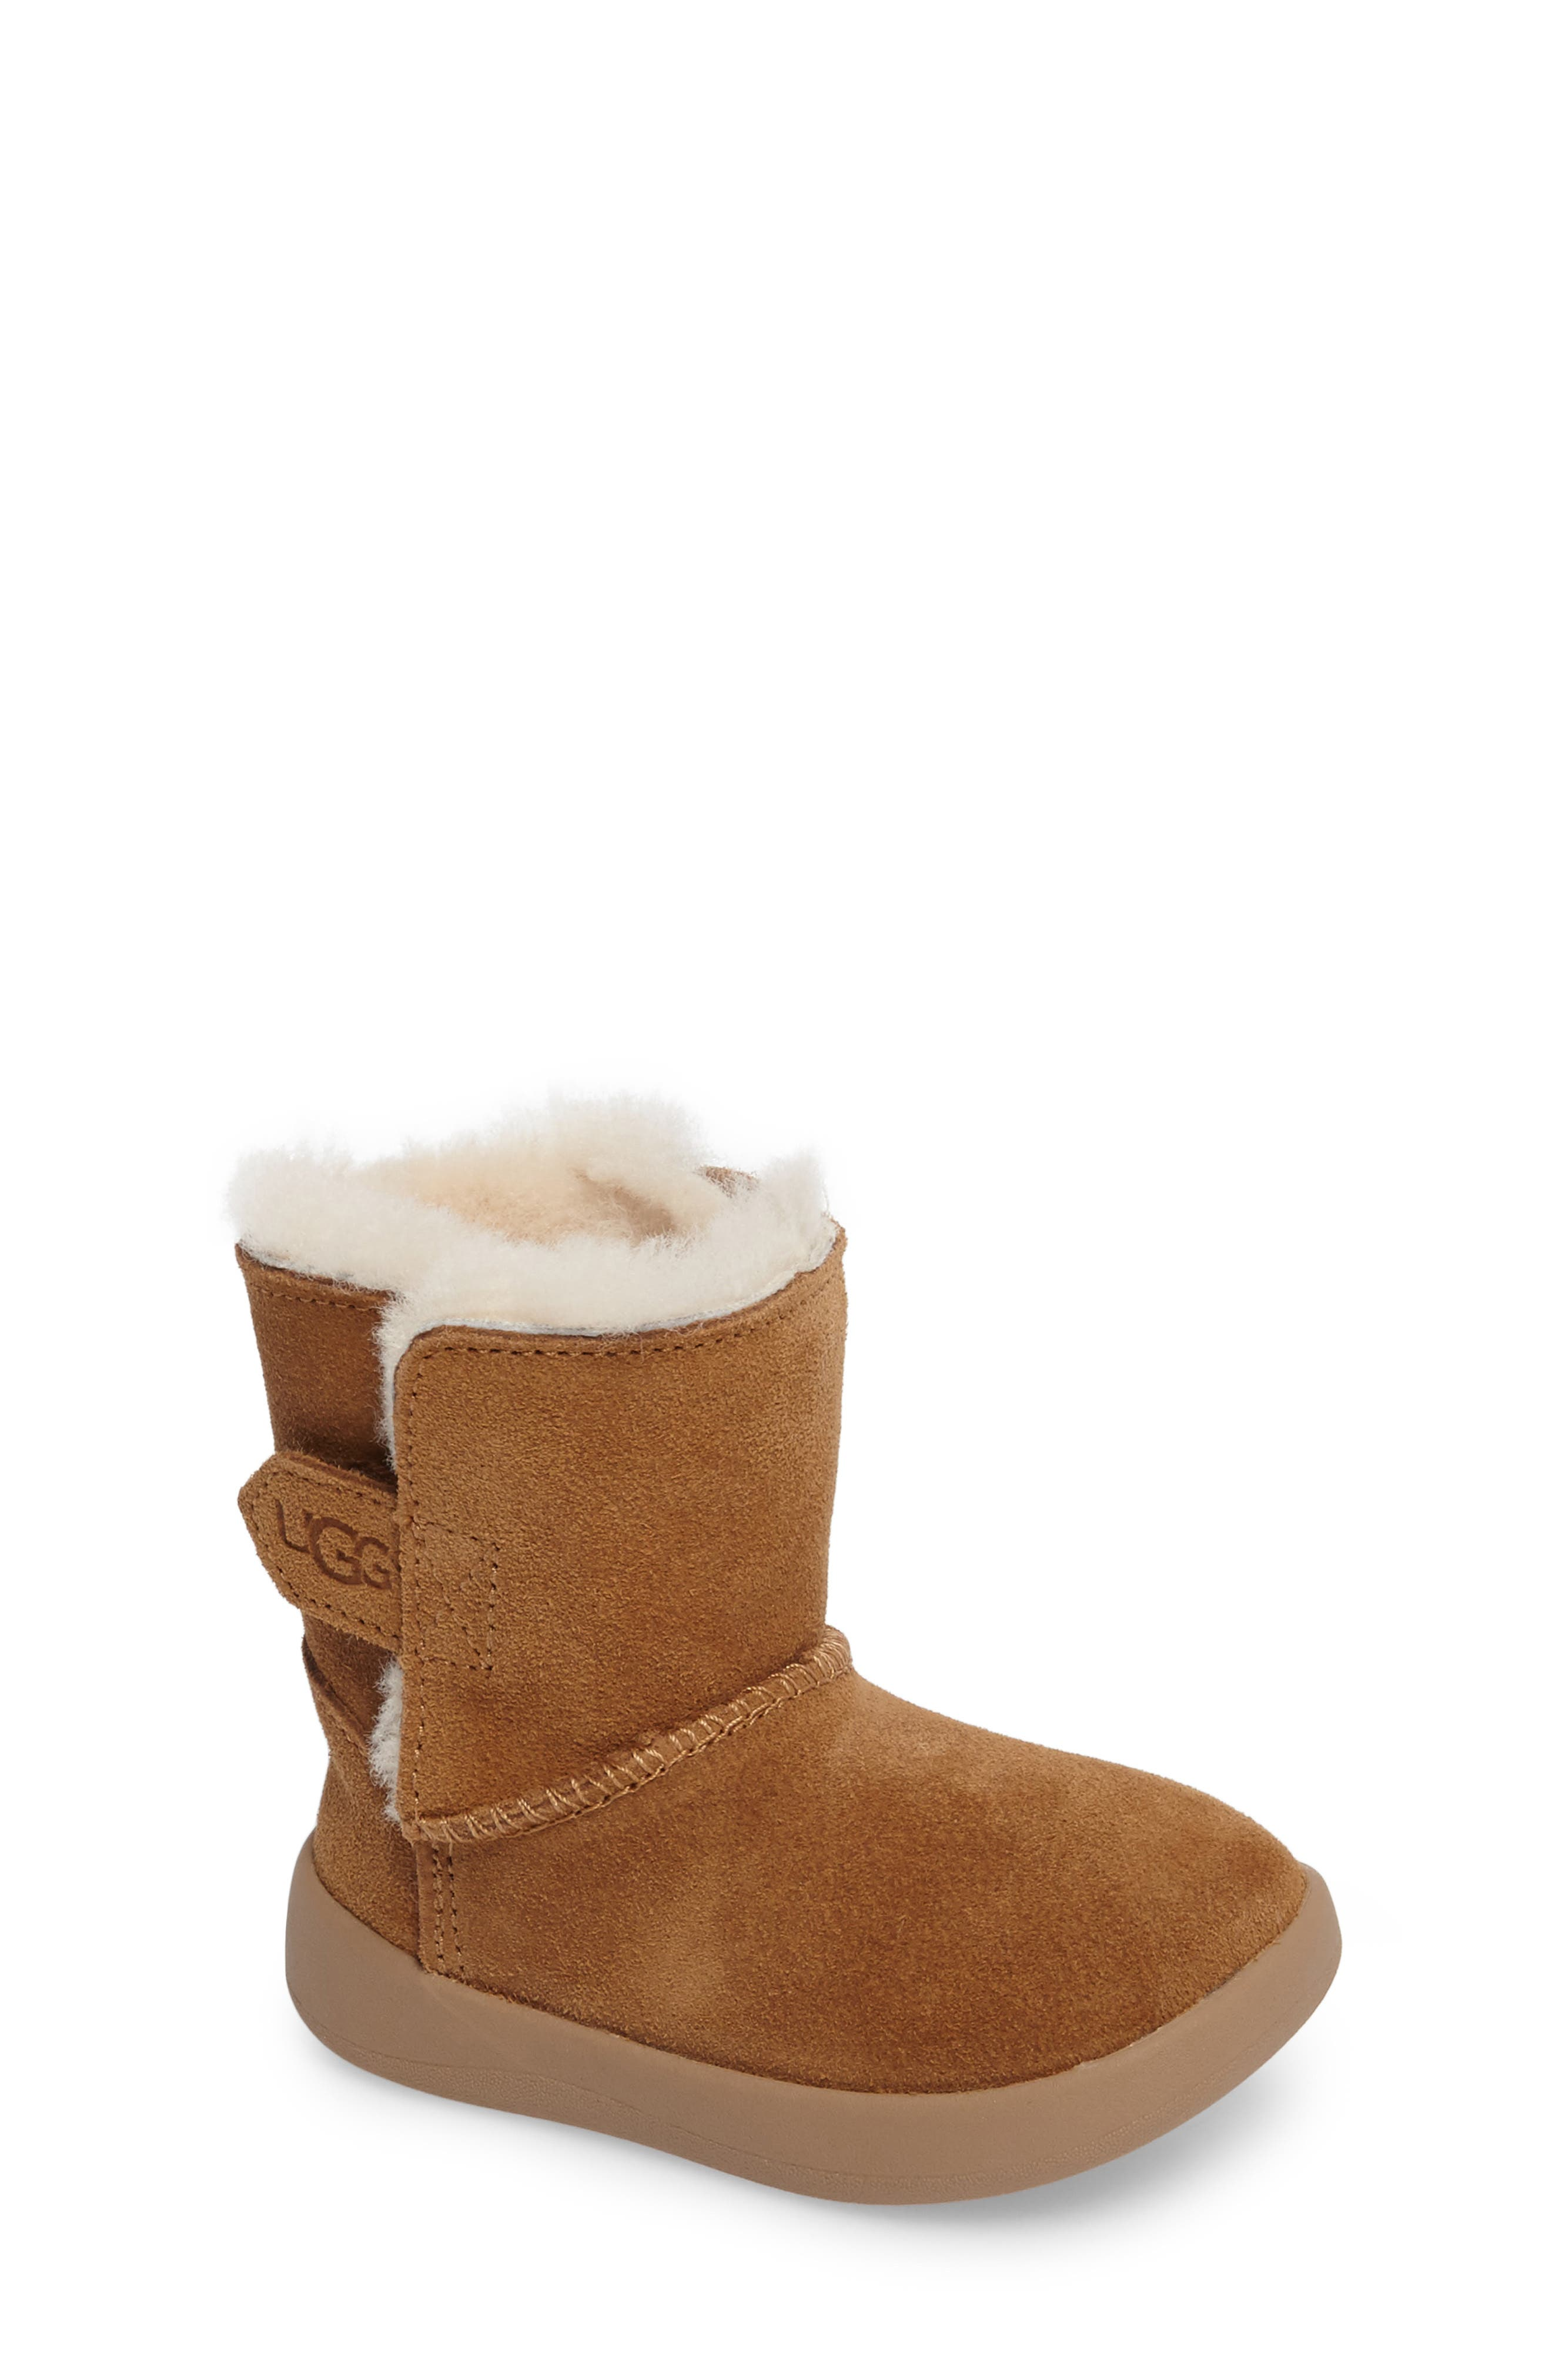 Keelan Genuine Shearling Baby Bootie,                             Main thumbnail 1, color,                             Chestnut Brown